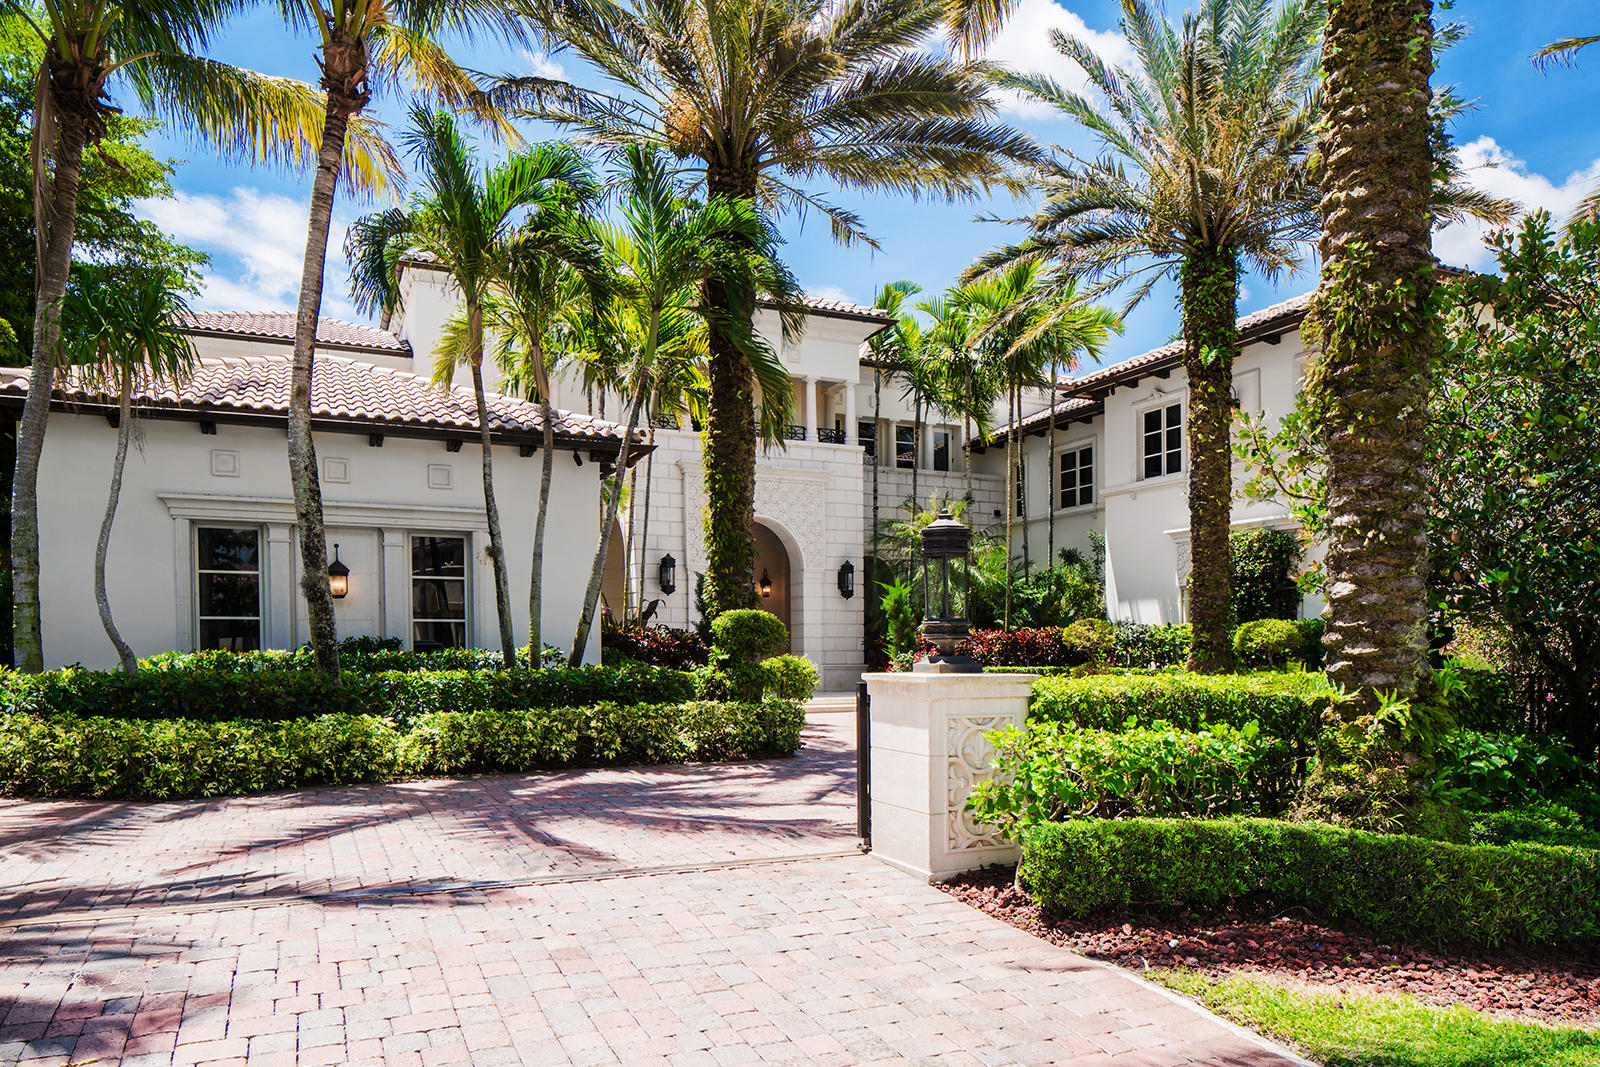 3682 Princeton Place, Boca Raton, Florida 33496, 9 Bedrooms Bedrooms, ,10.6 BathroomsBathrooms,Single Family,For Rent,Princeton,RX-10485297